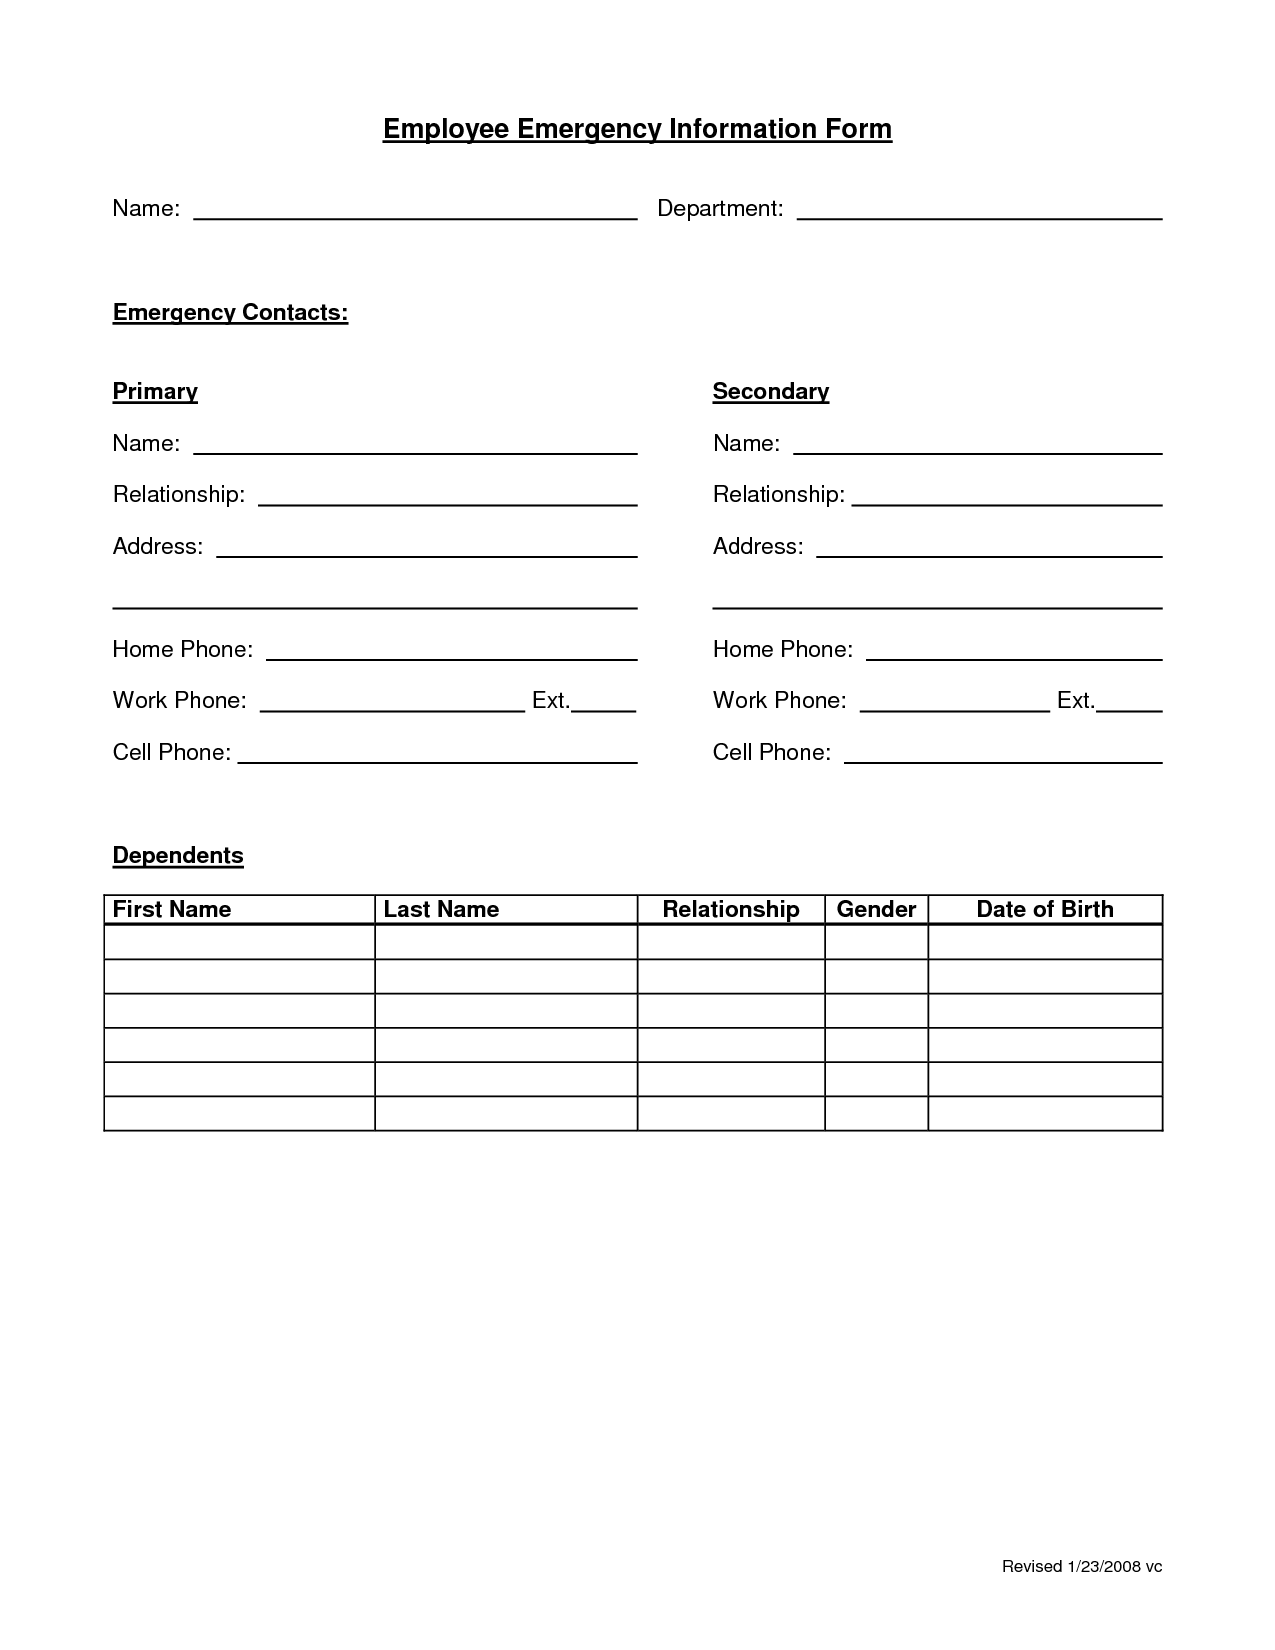 Employee Emergency Form  Contact Information Form Template